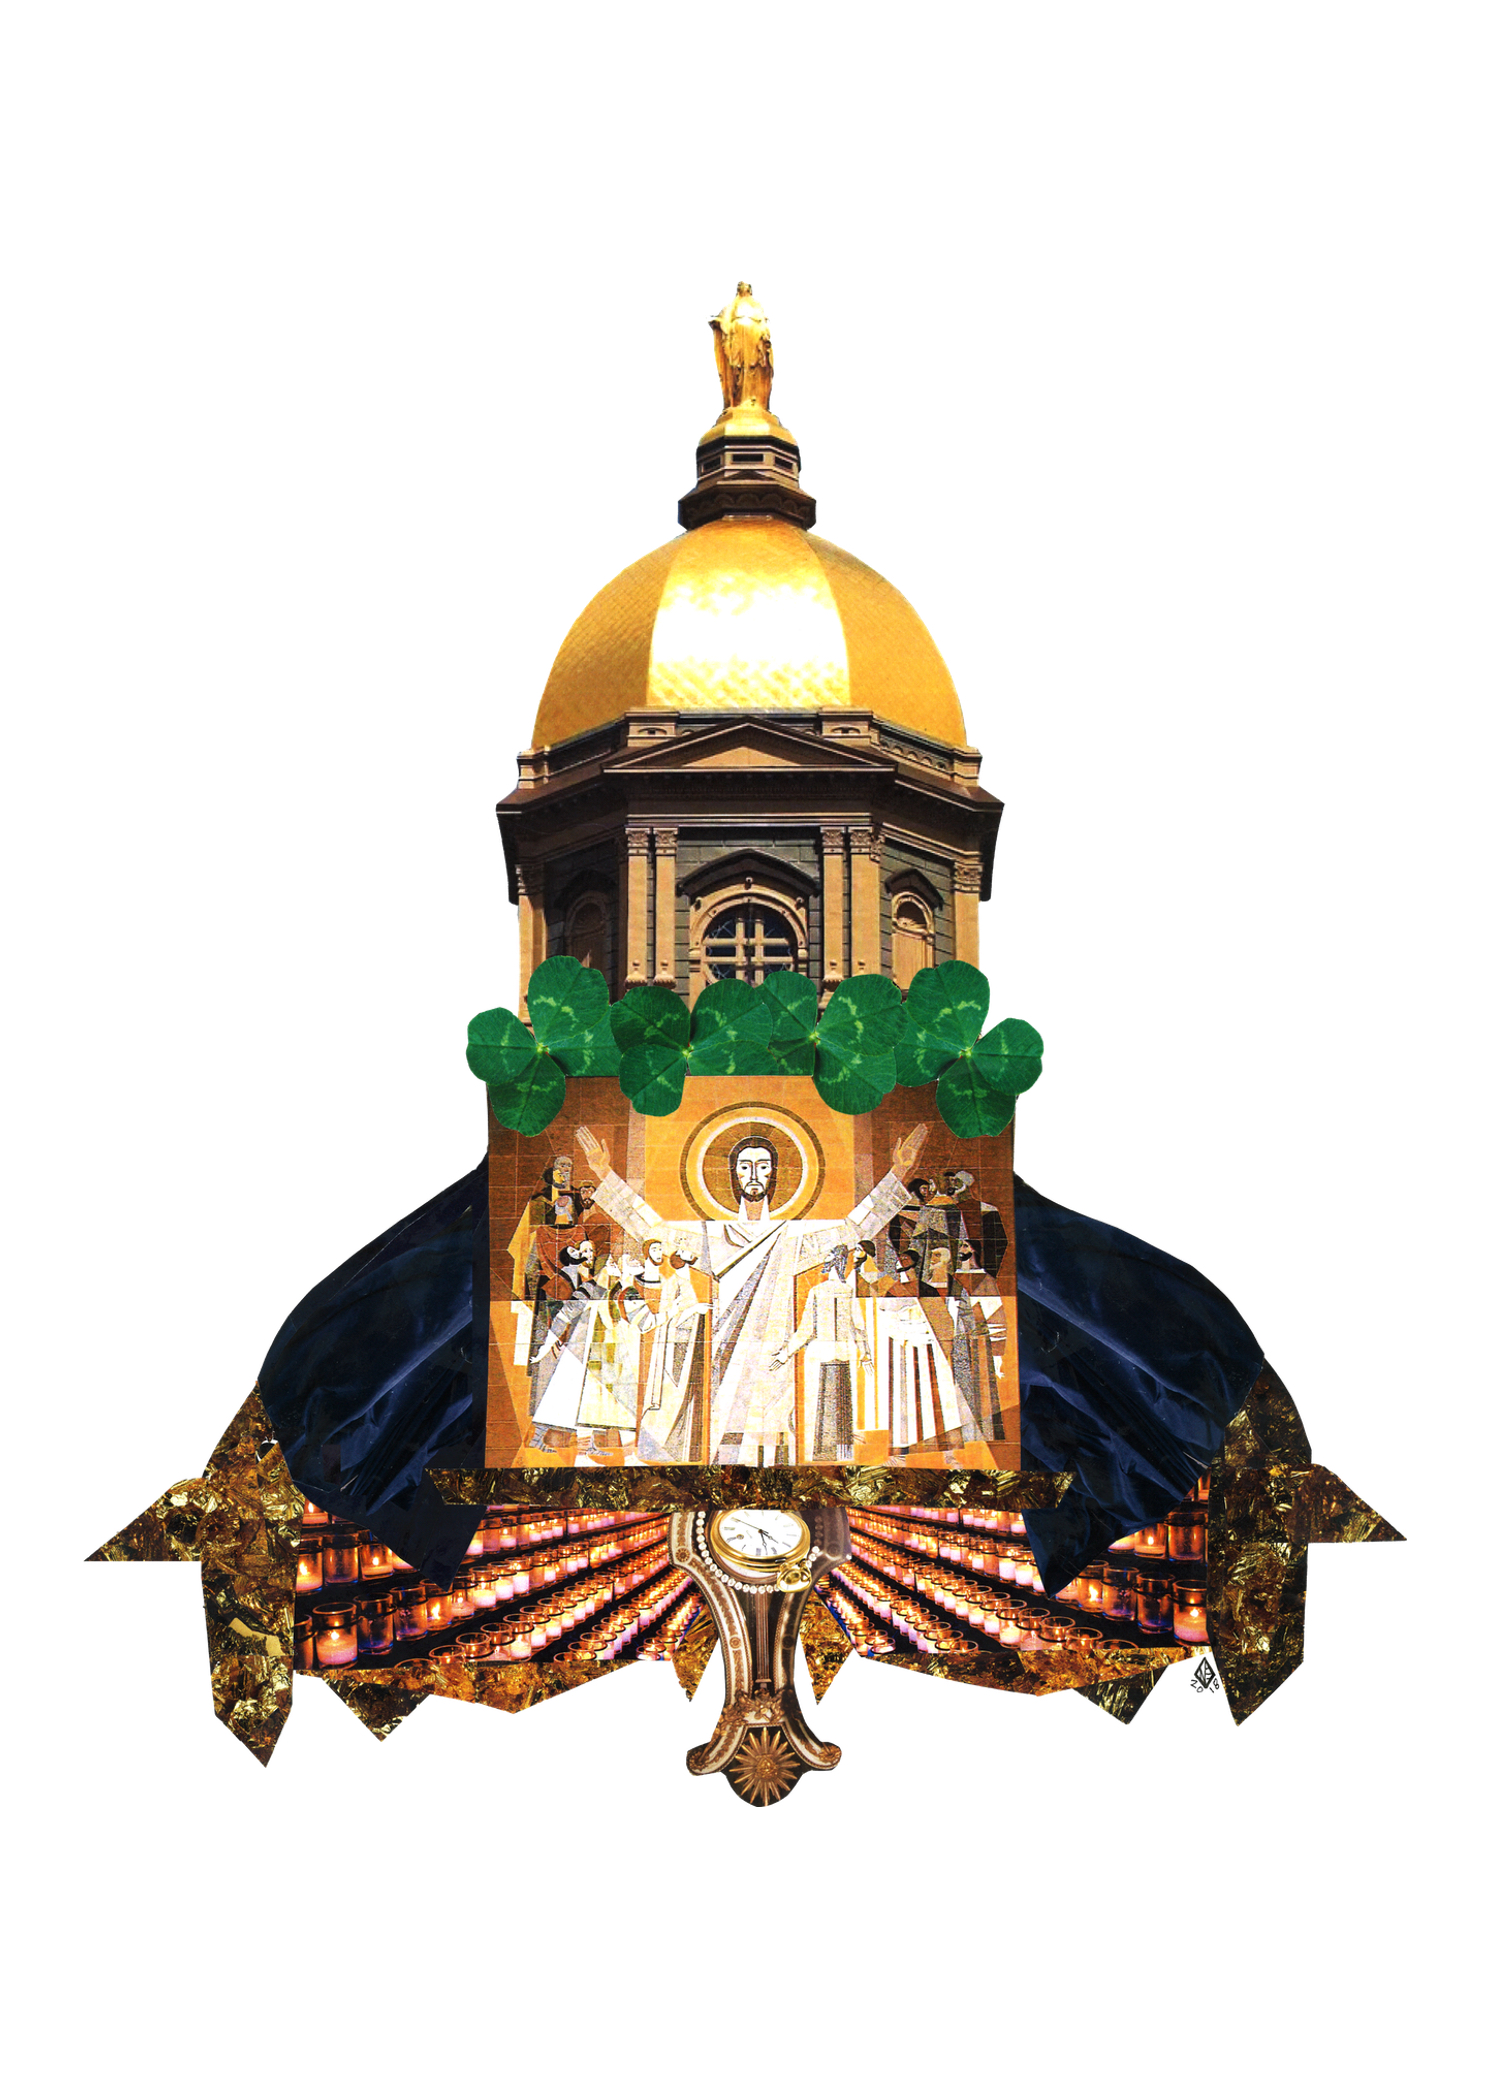 Tradition, Notre Dame, 11x14, 2018